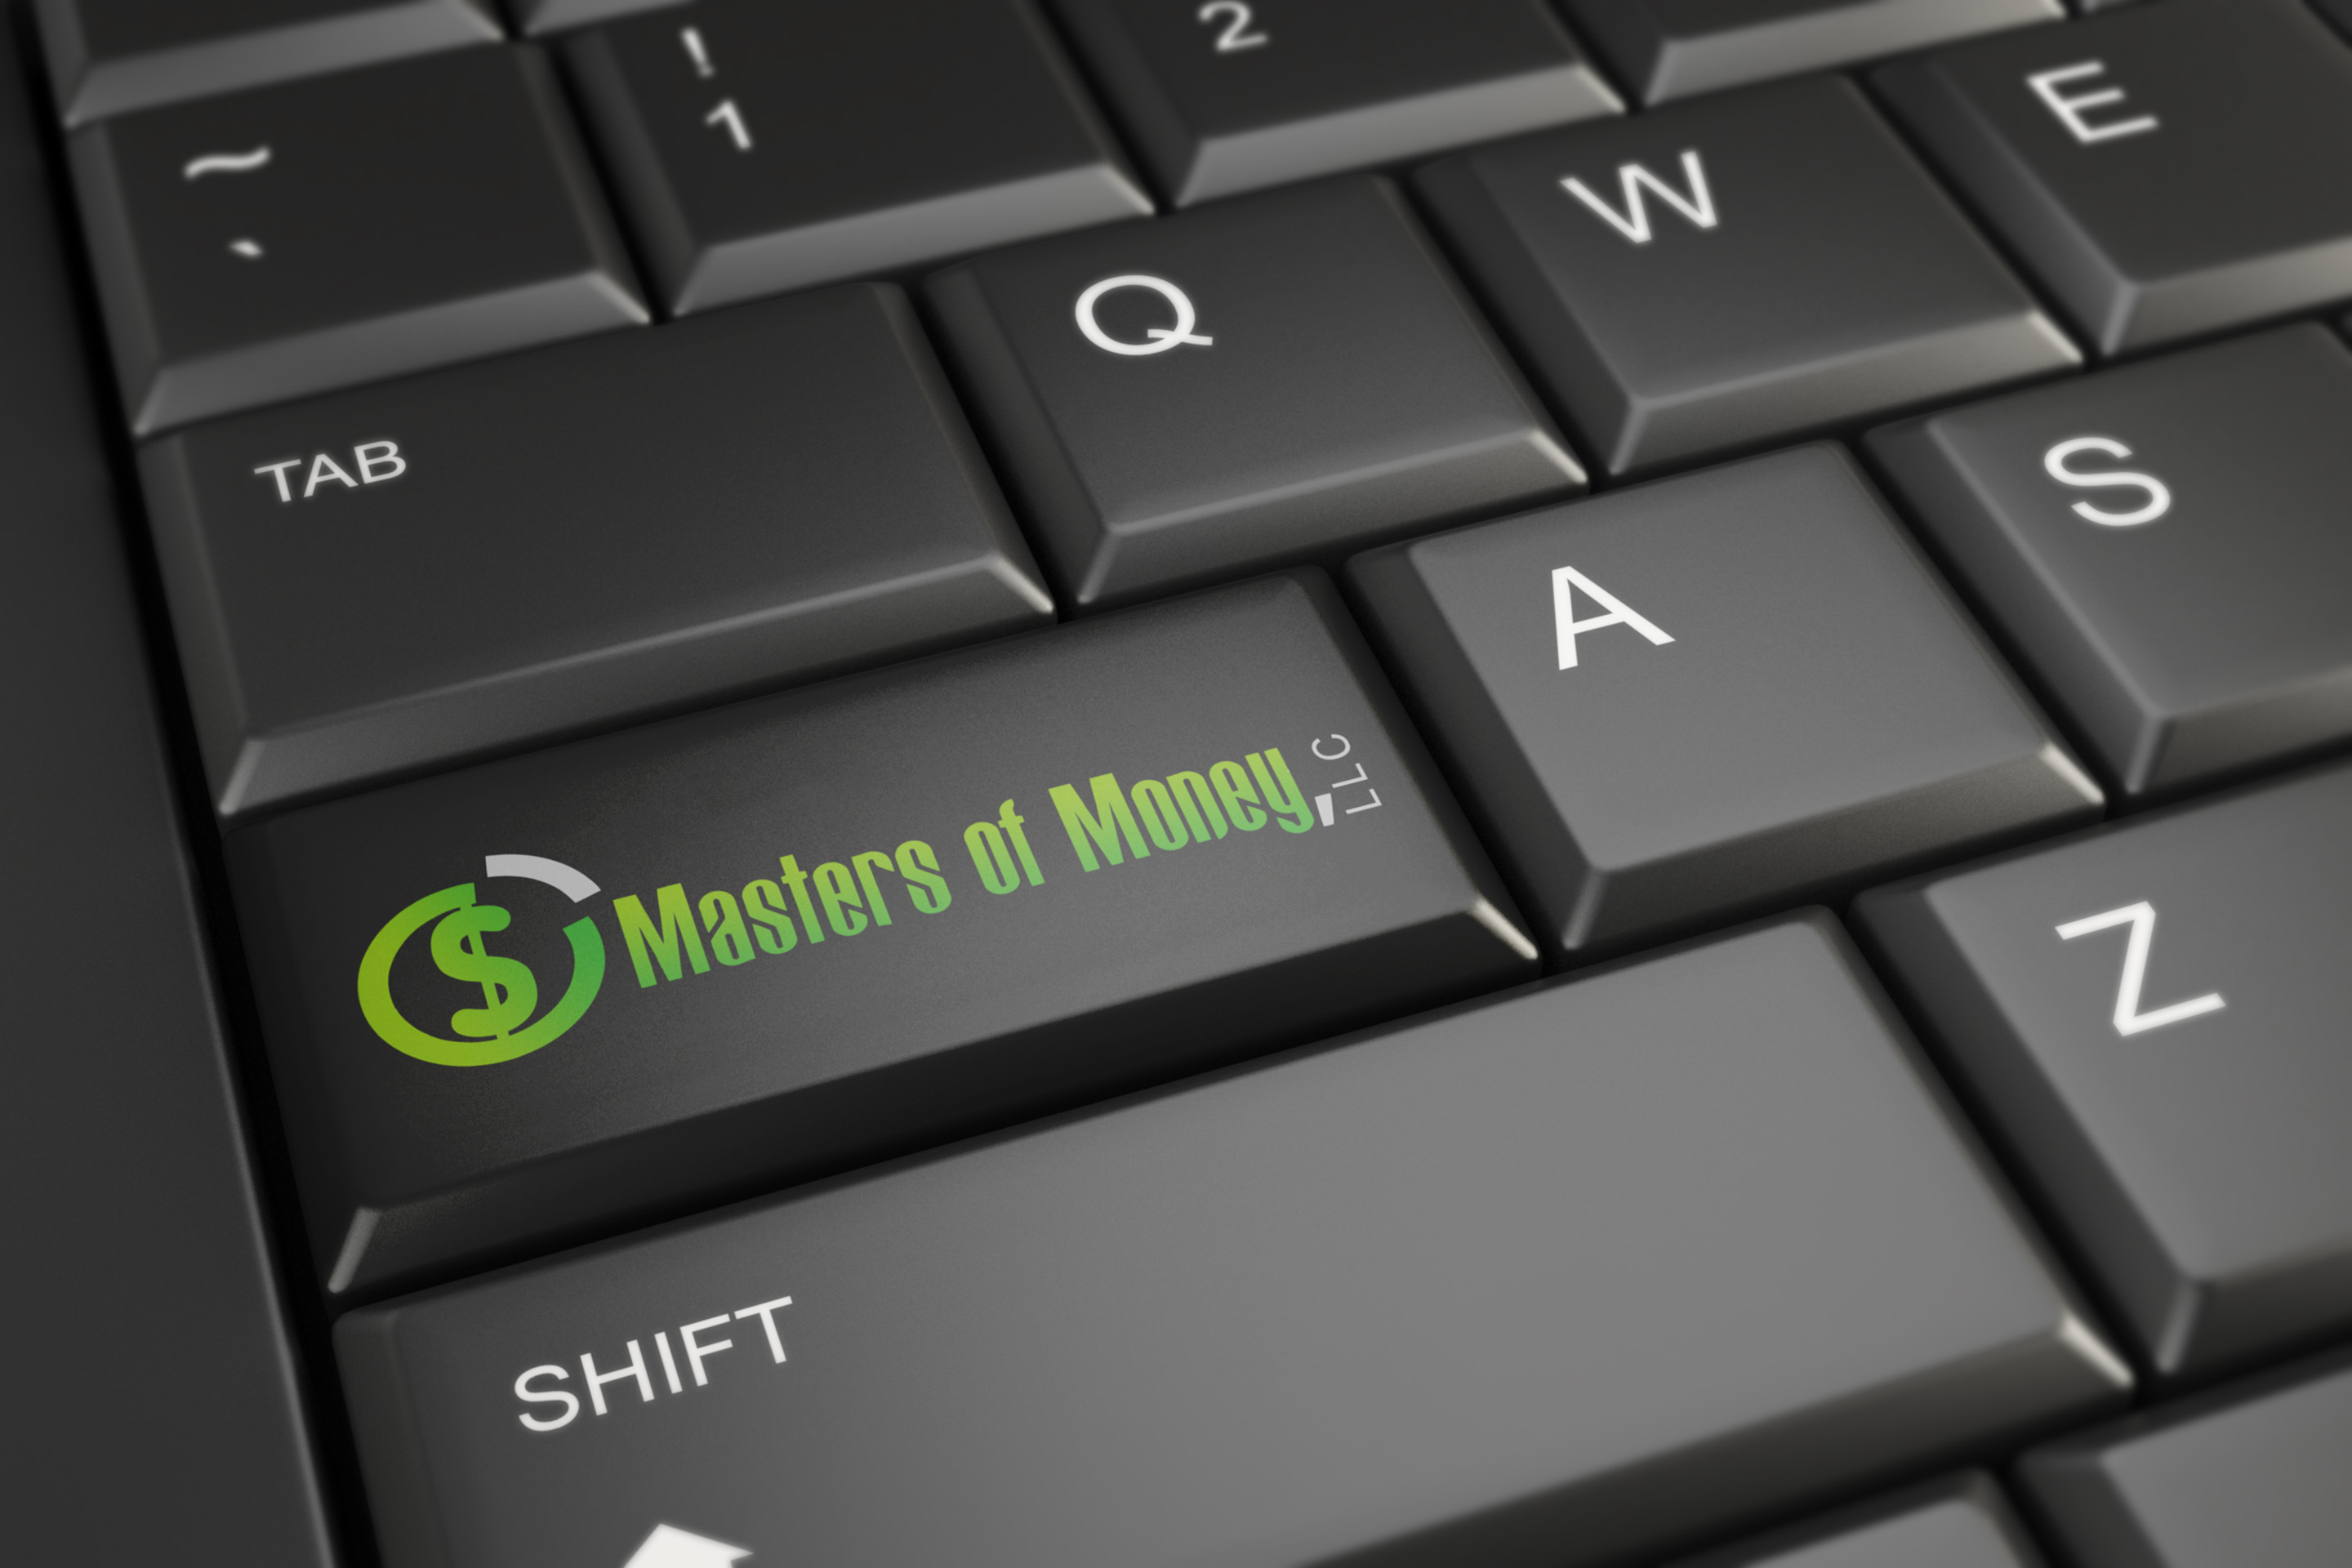 Masters of Money LLC Computer Key Logo Picture